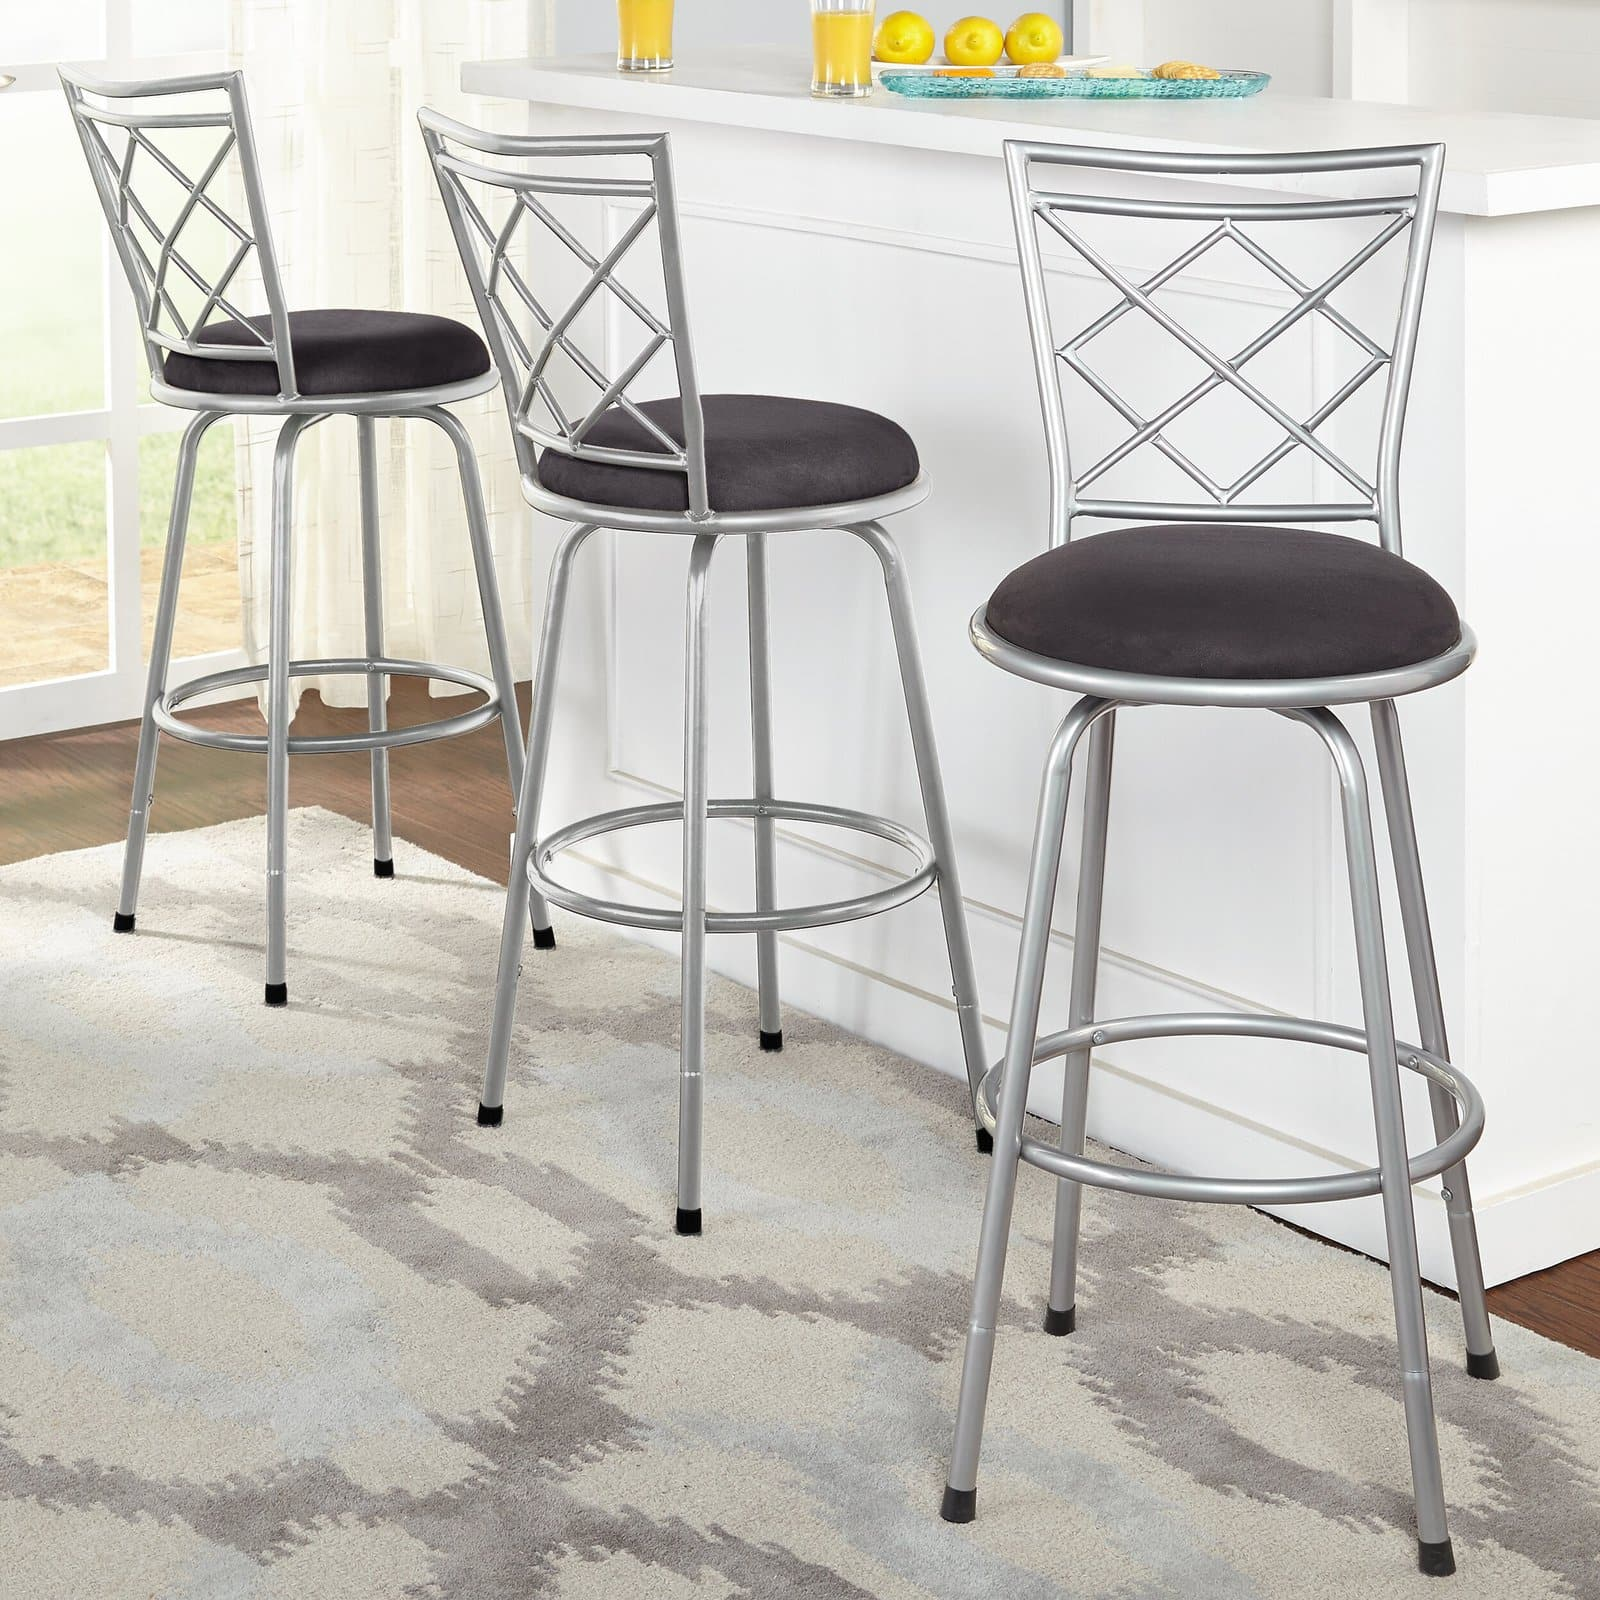 Dining Chair Style Kitchen Island Stools With Backs